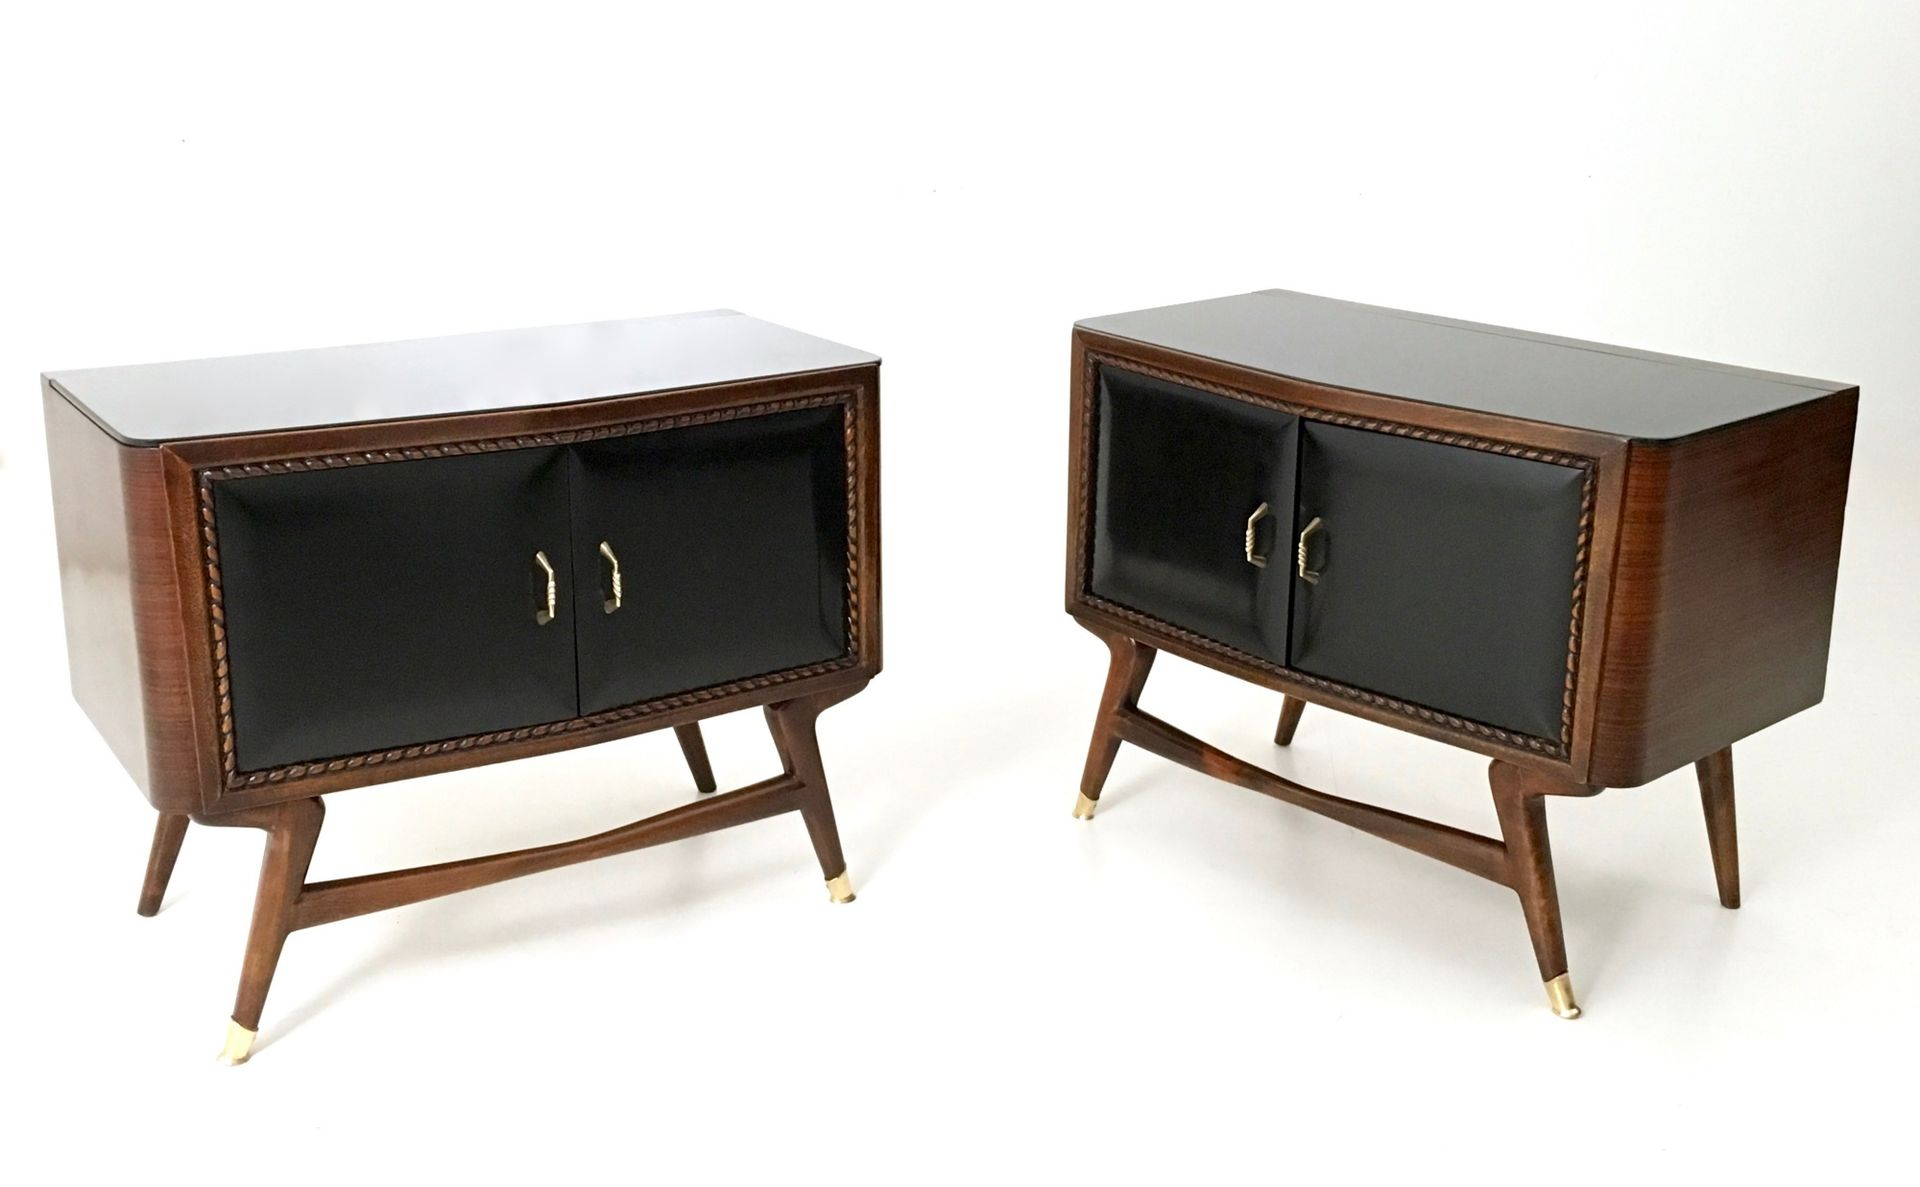 Black walnut ebonized wood nightstands with a glass top 1950s set of 2